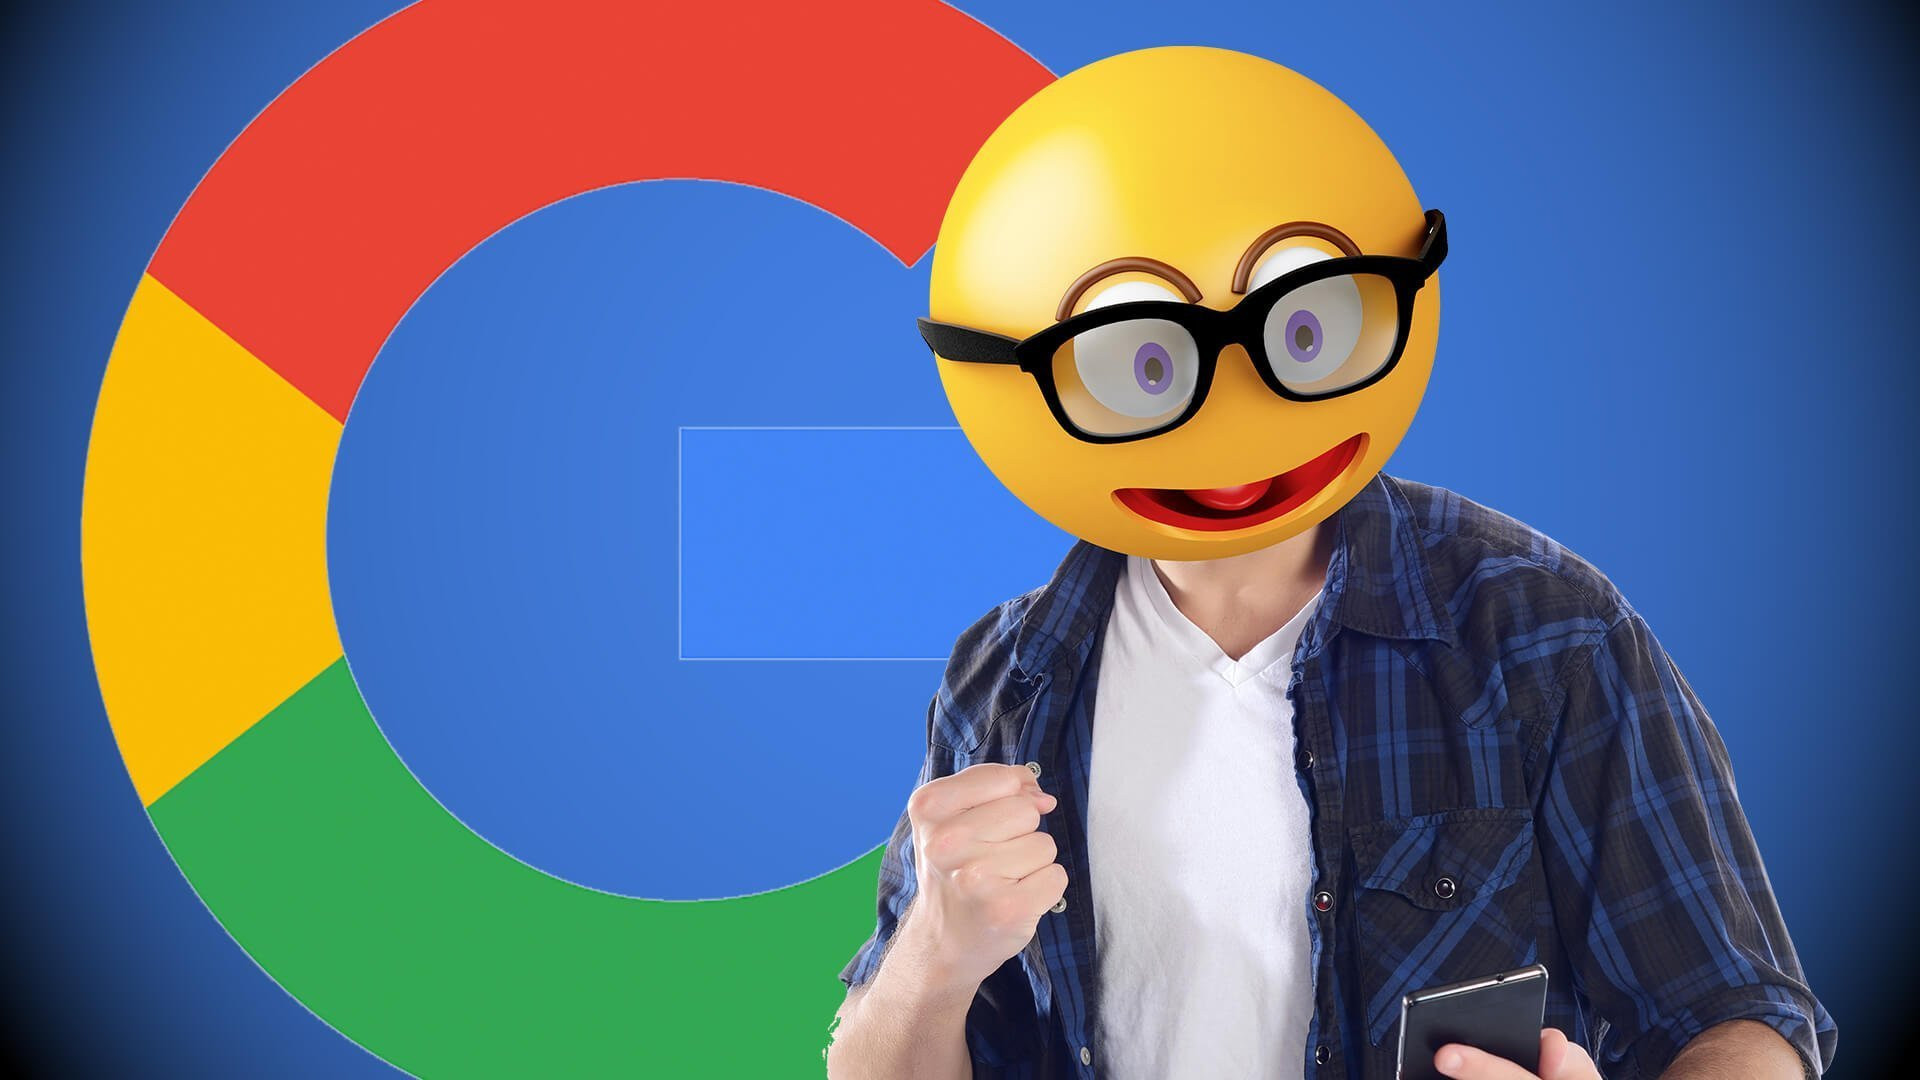 Emoji SEO presents opportunities for video